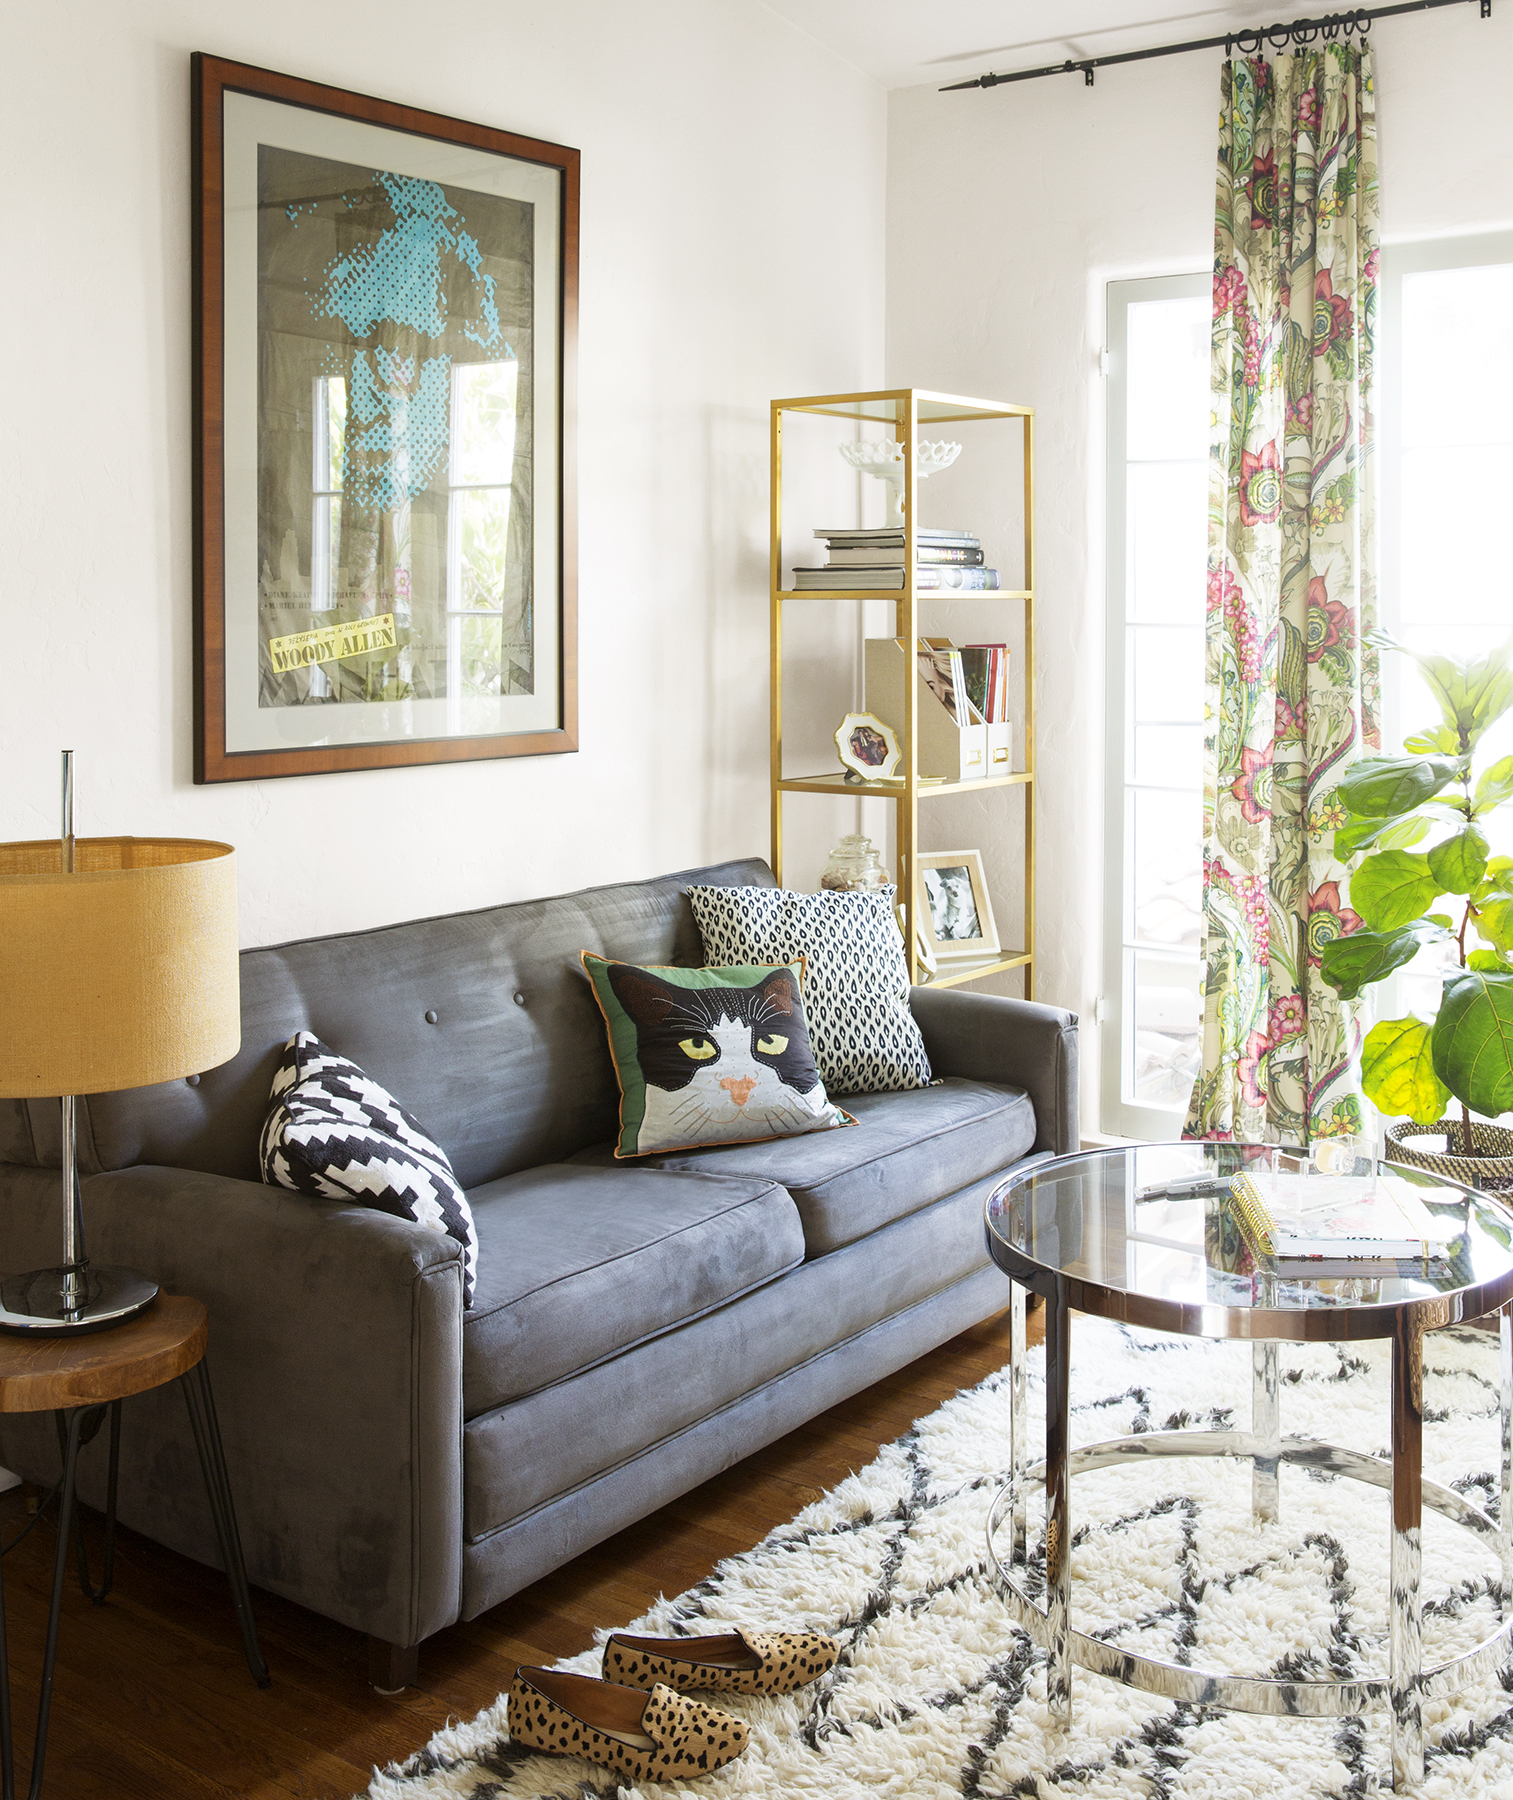 Superb Family Room With Gray Sofa And Area Rug